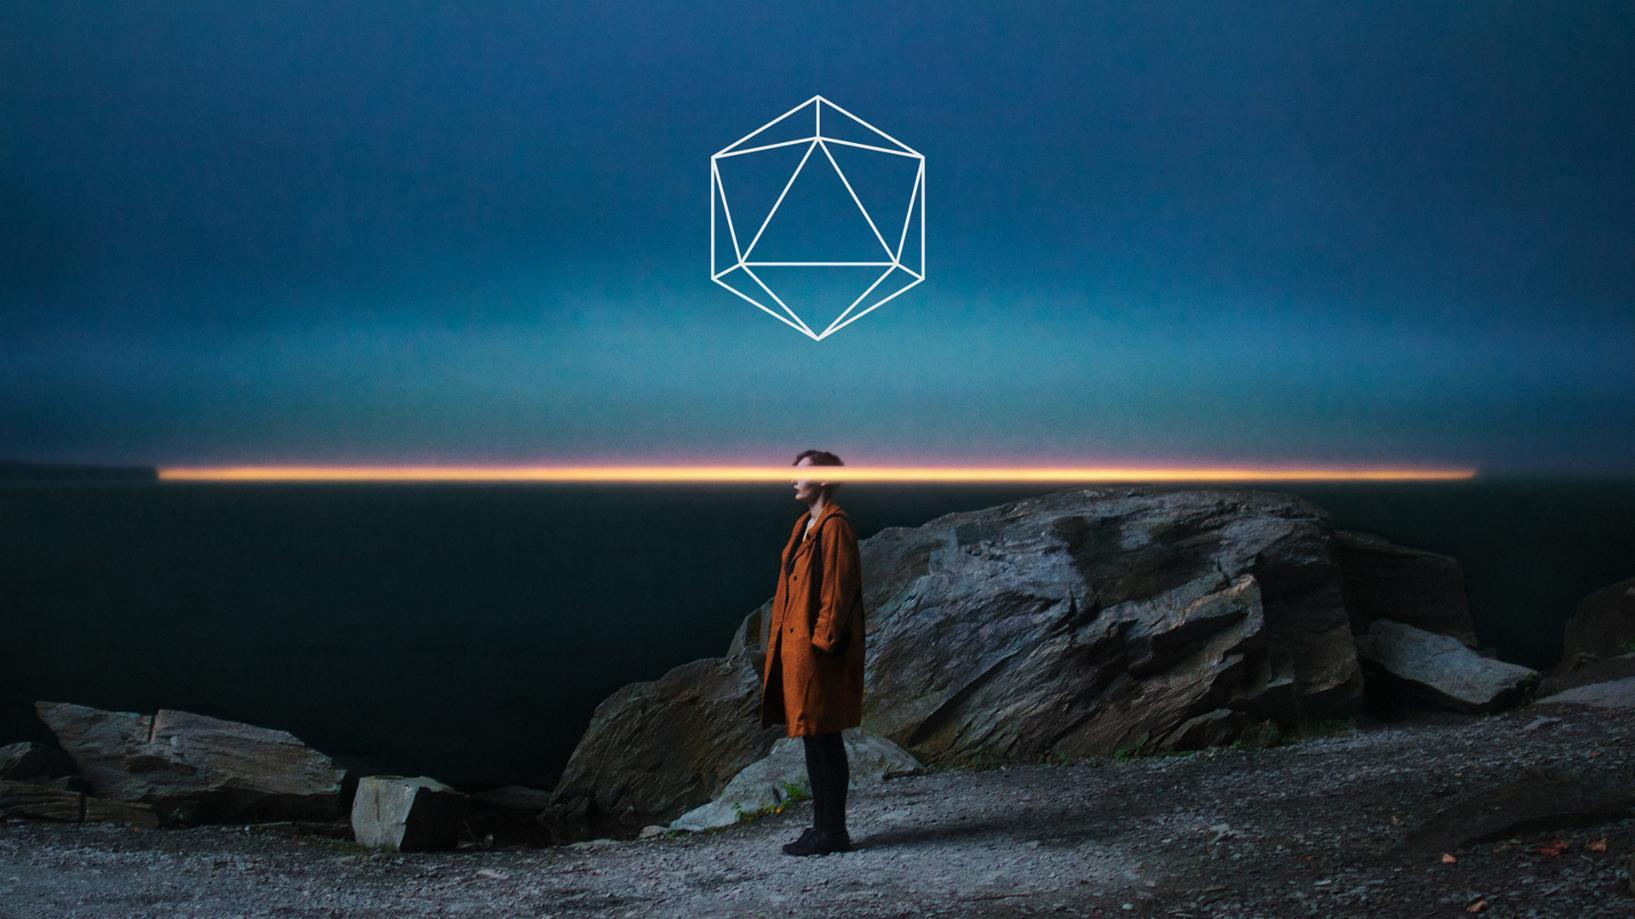 What is the name and release date of this ODESZA album?